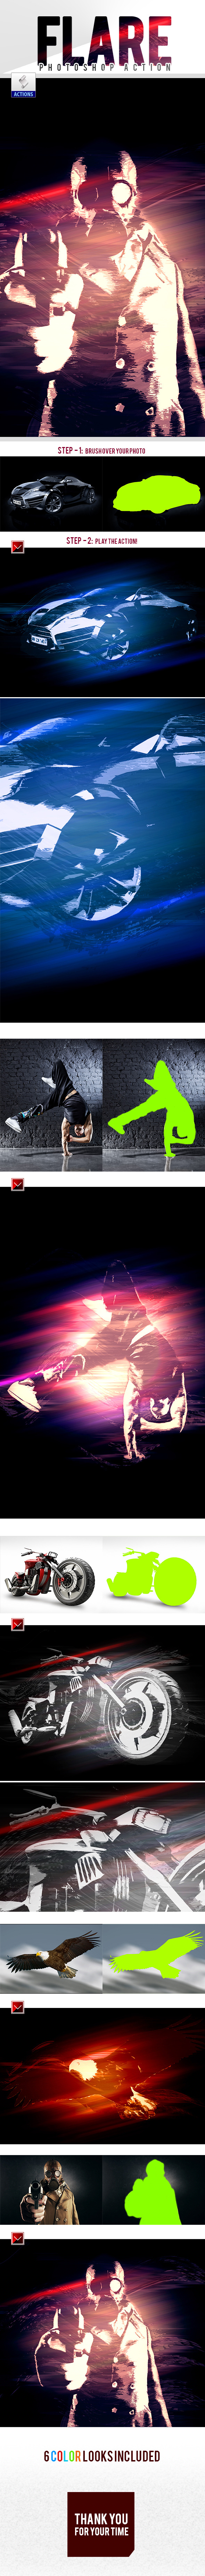 GraphicRiver Flare Photoshop Action 11465087